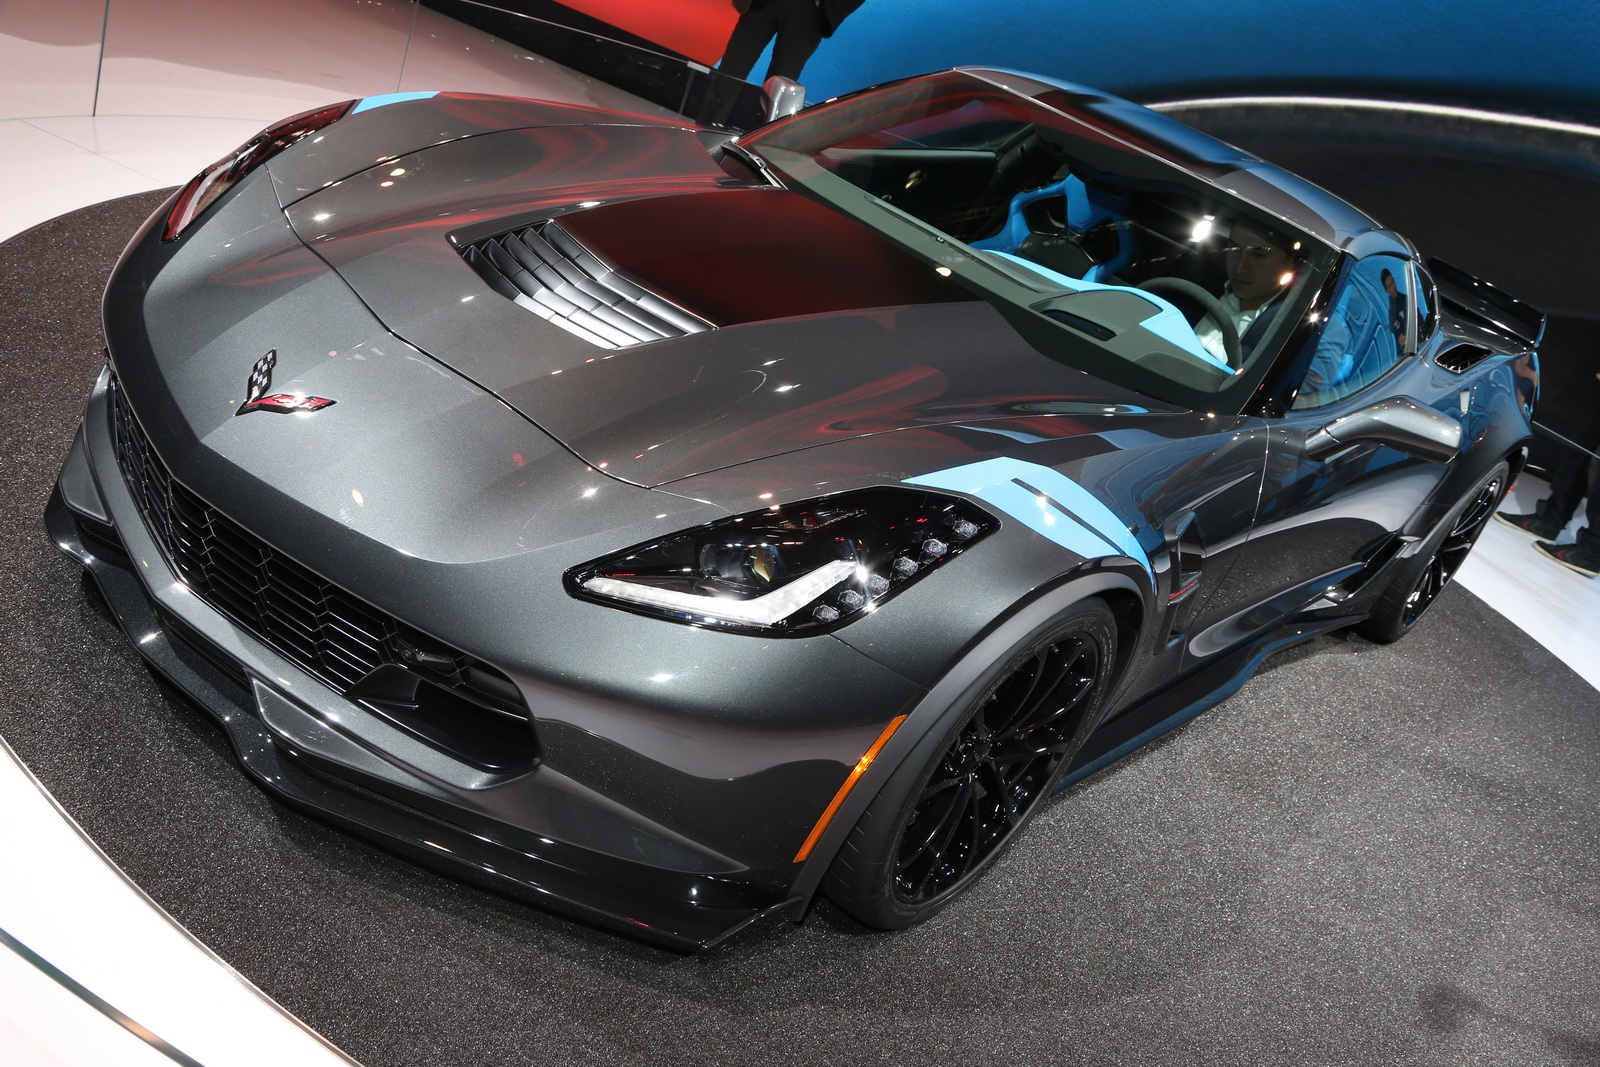 New 2017 Corvette Grand Sport Brings Zo6 Goodies To